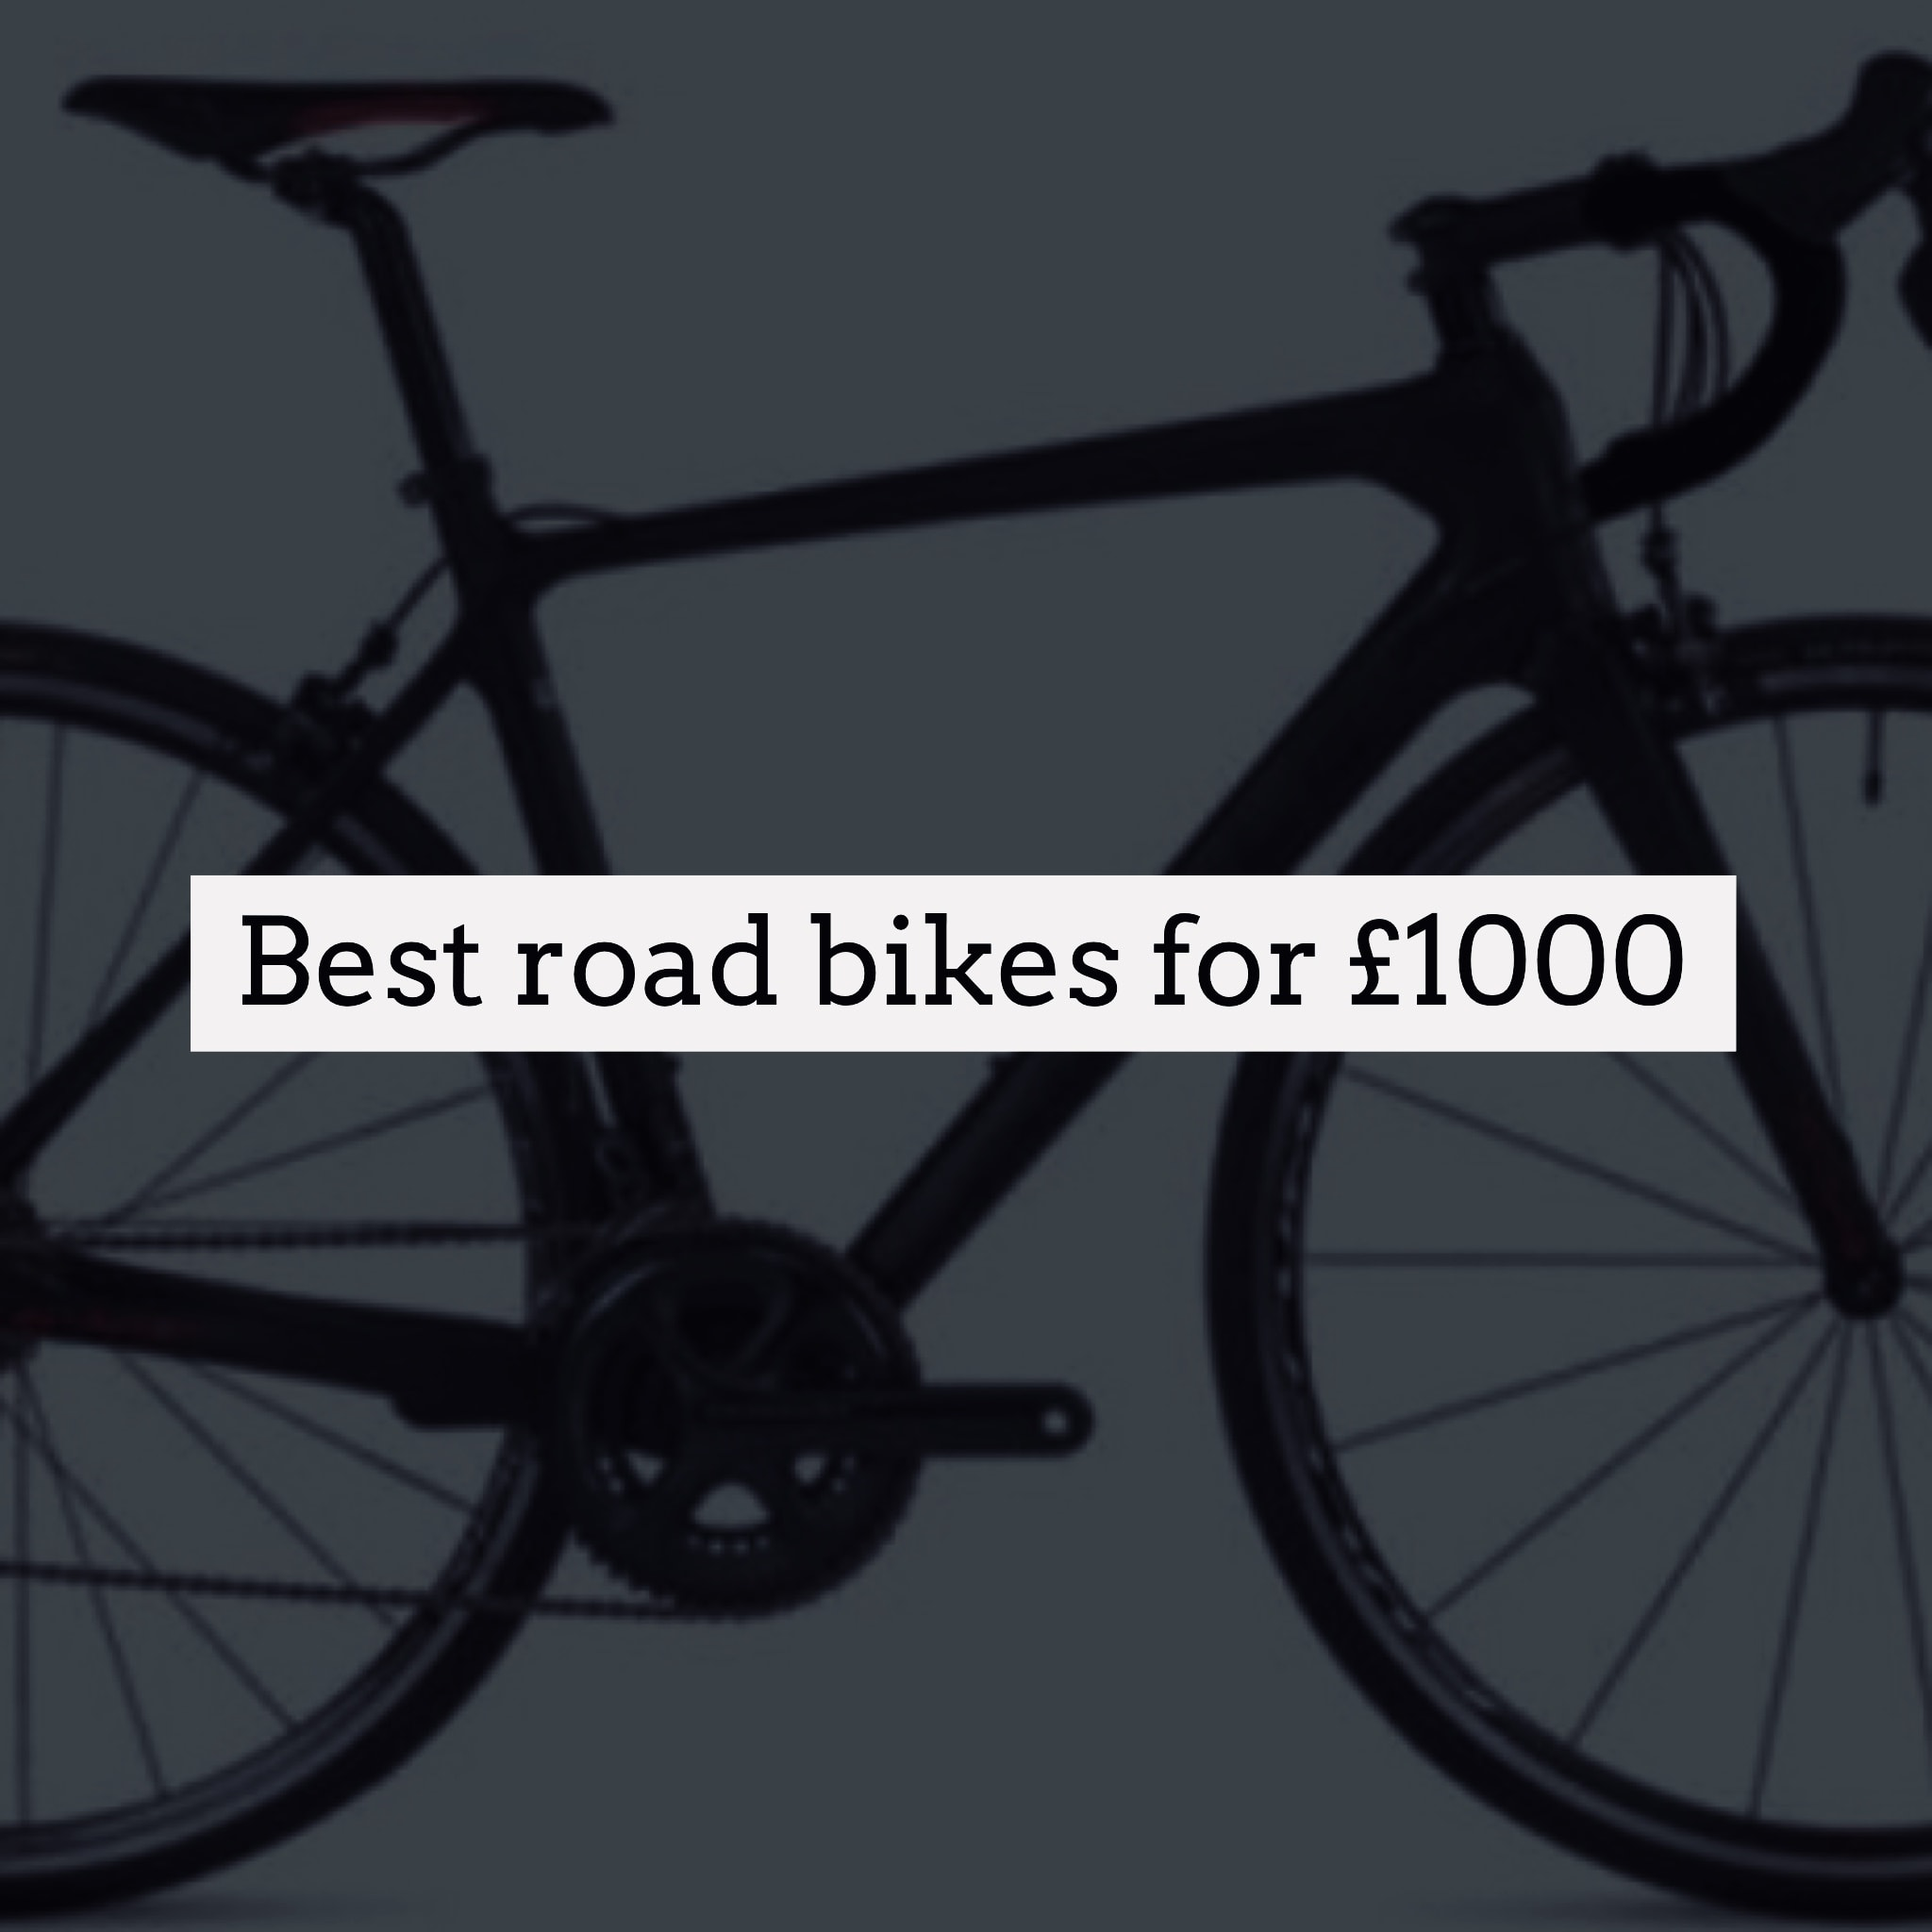 Road bikes for under 1000